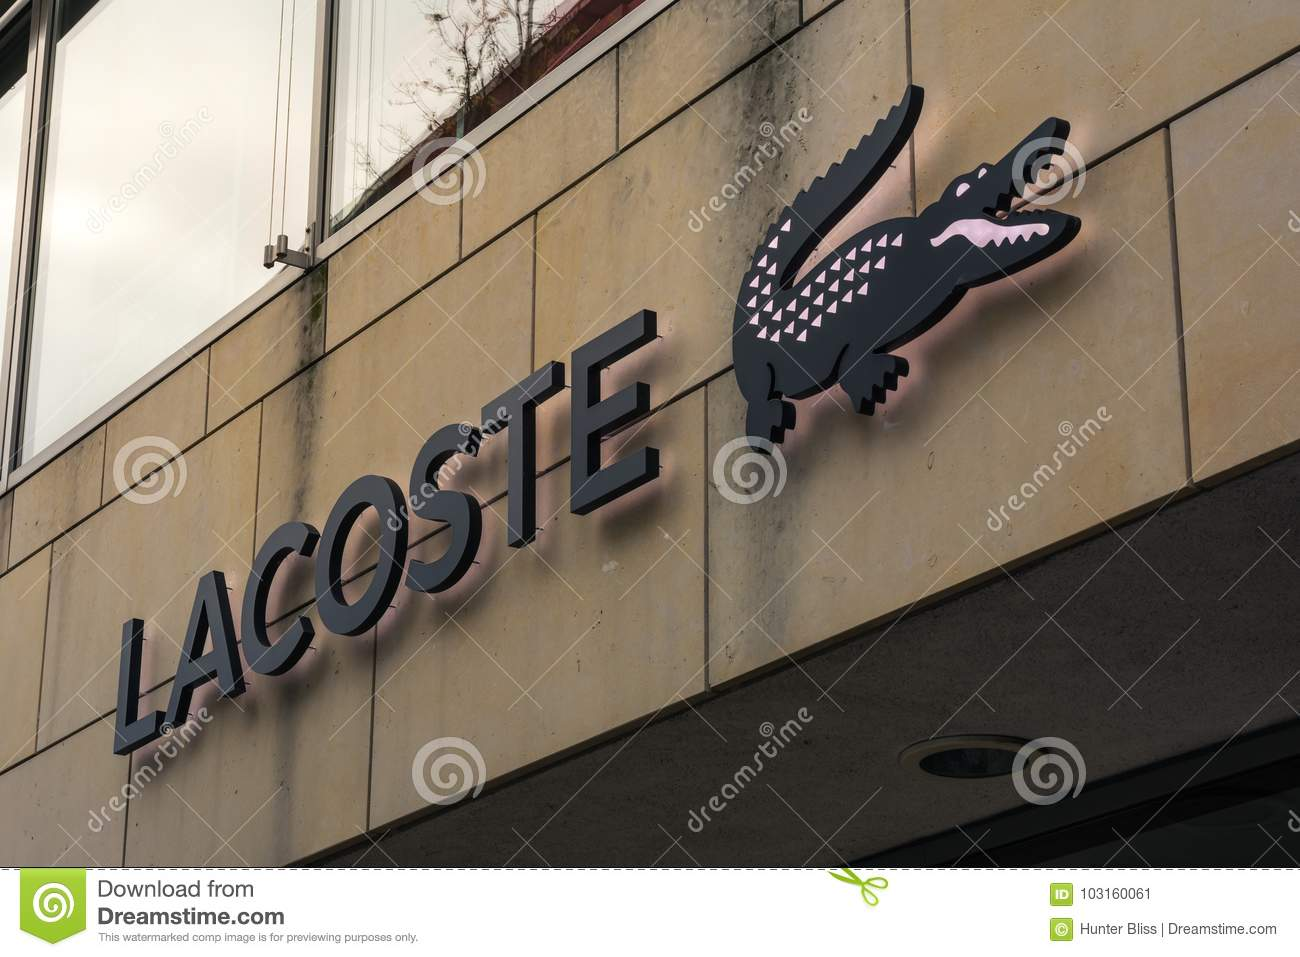 79da69ce20b90 Lacoste Logo At Metzingen Outlet Shopping Complex In Germany